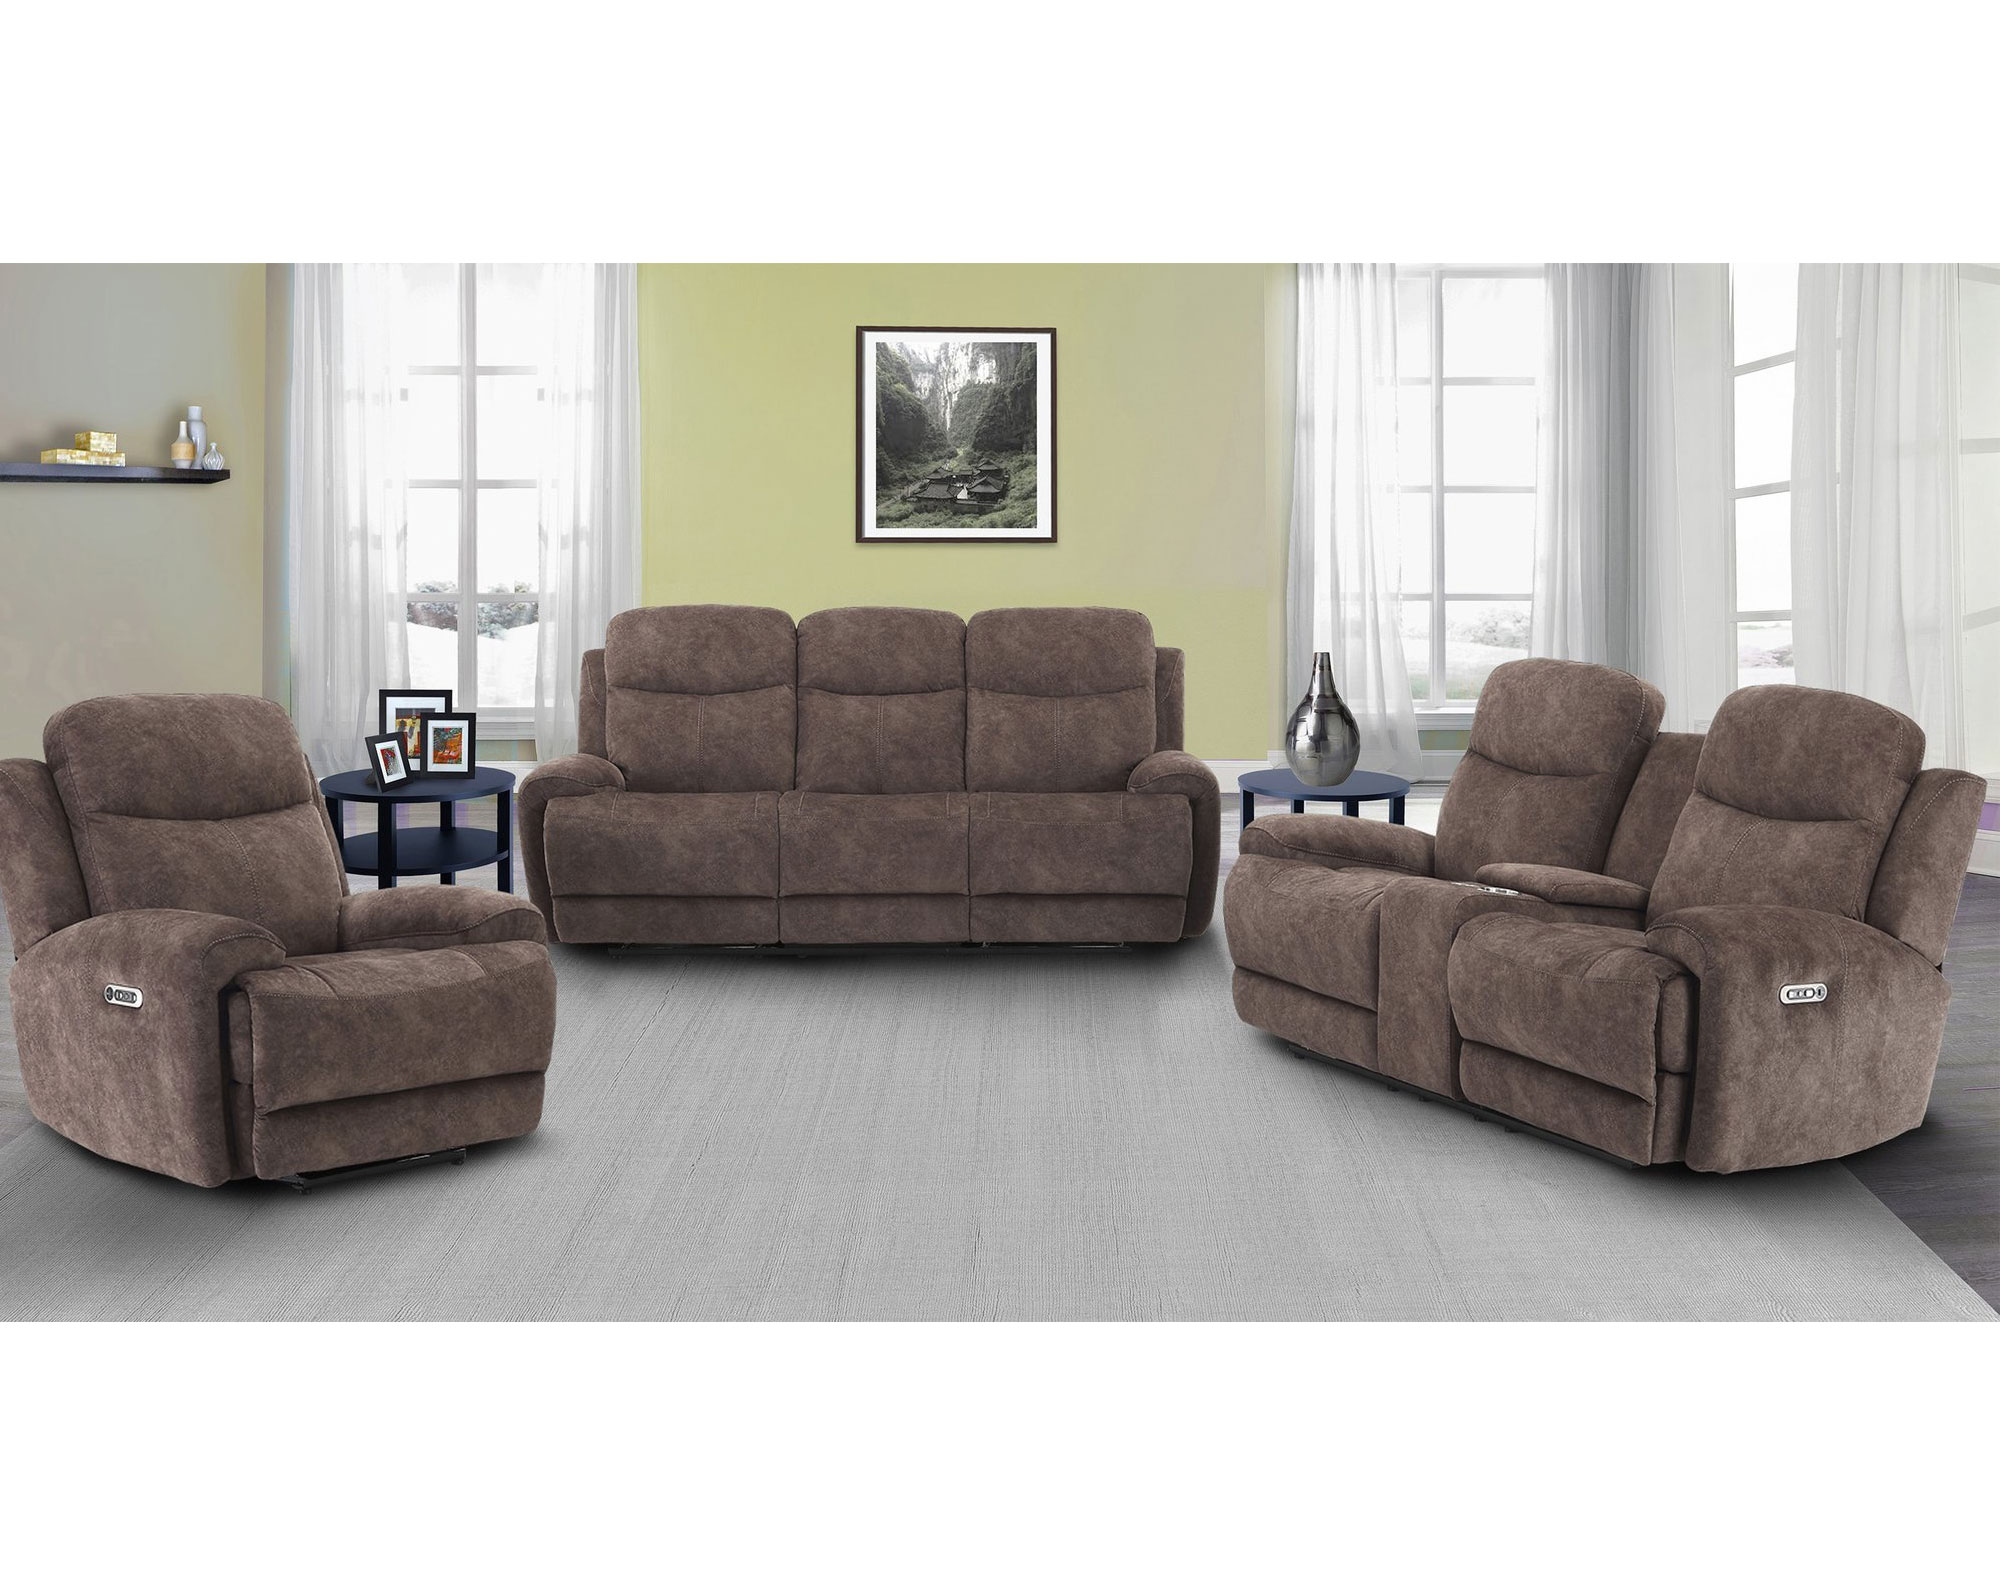 Remarkable Bowie Range Power Reclining Sofa With Power Sofas And Caraccident5 Cool Chair Designs And Ideas Caraccident5Info